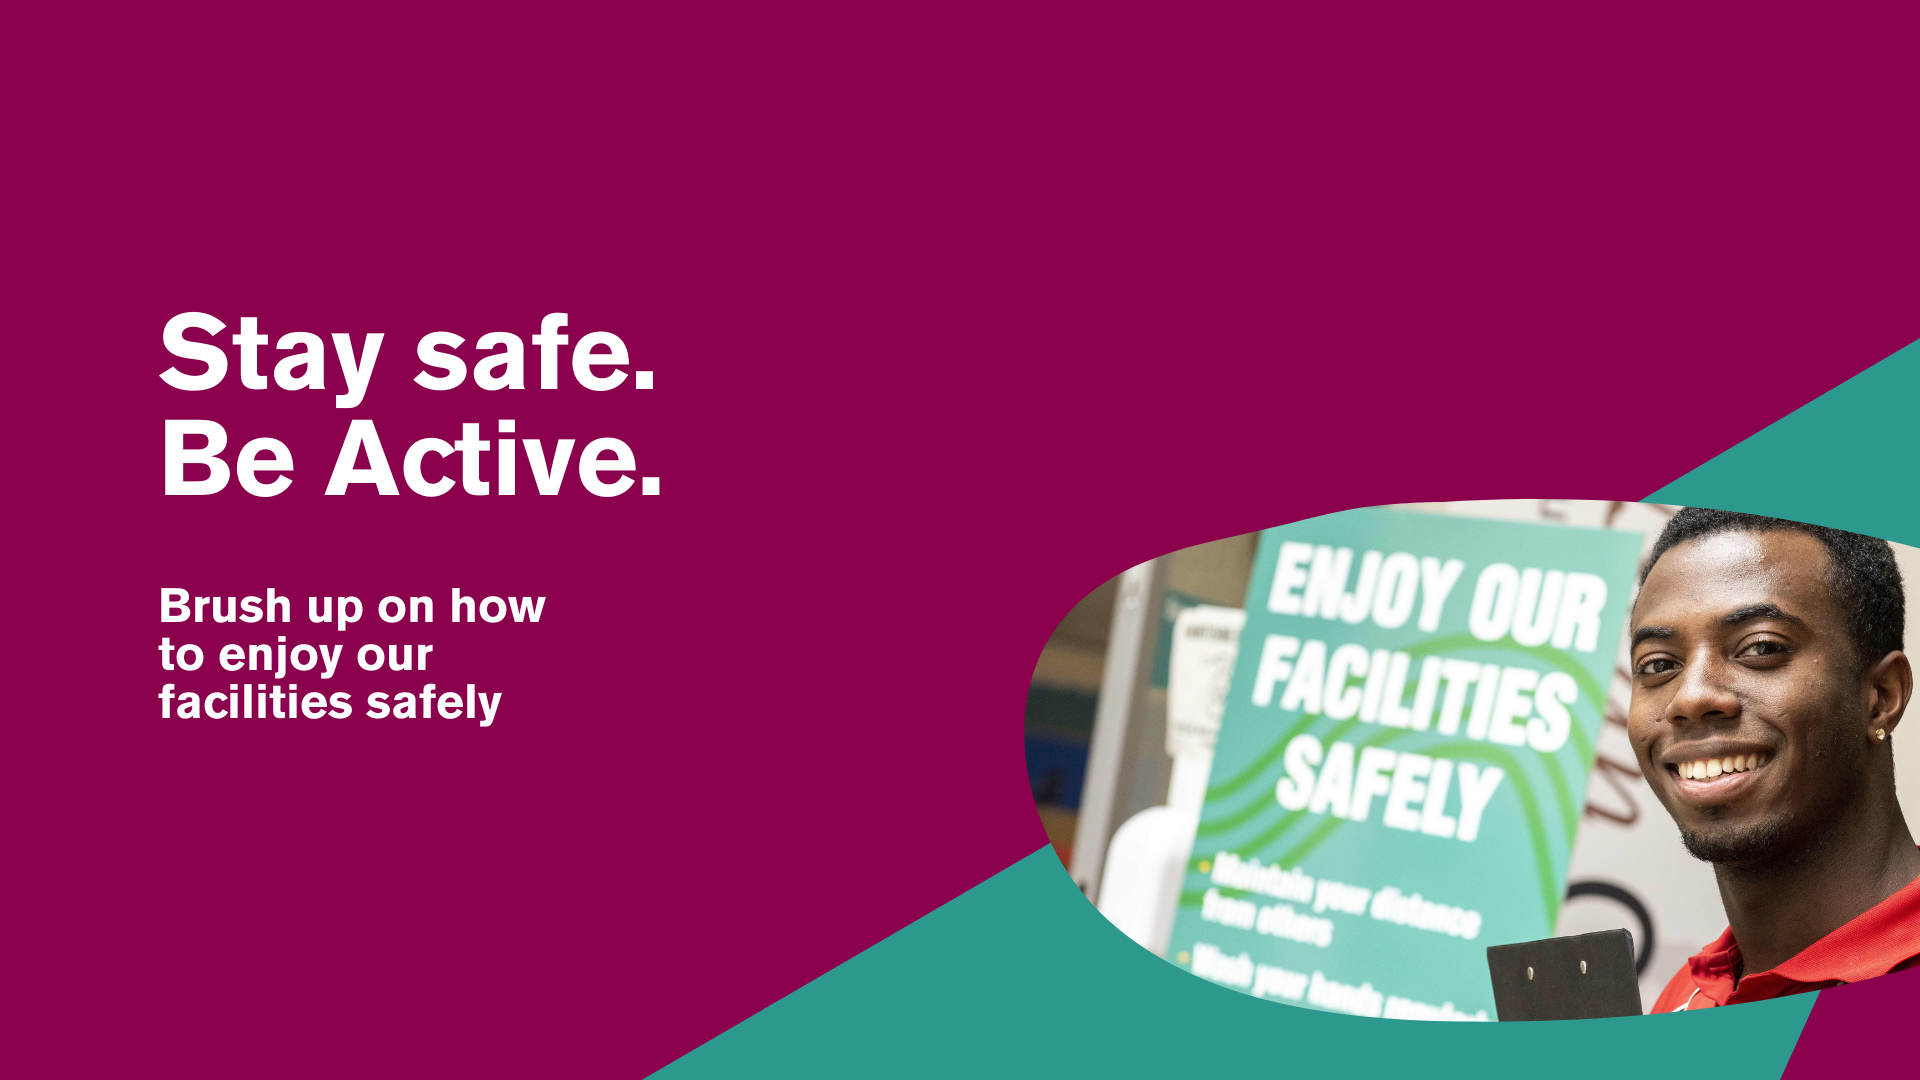 Brush up on how to enjoy our facilities safely